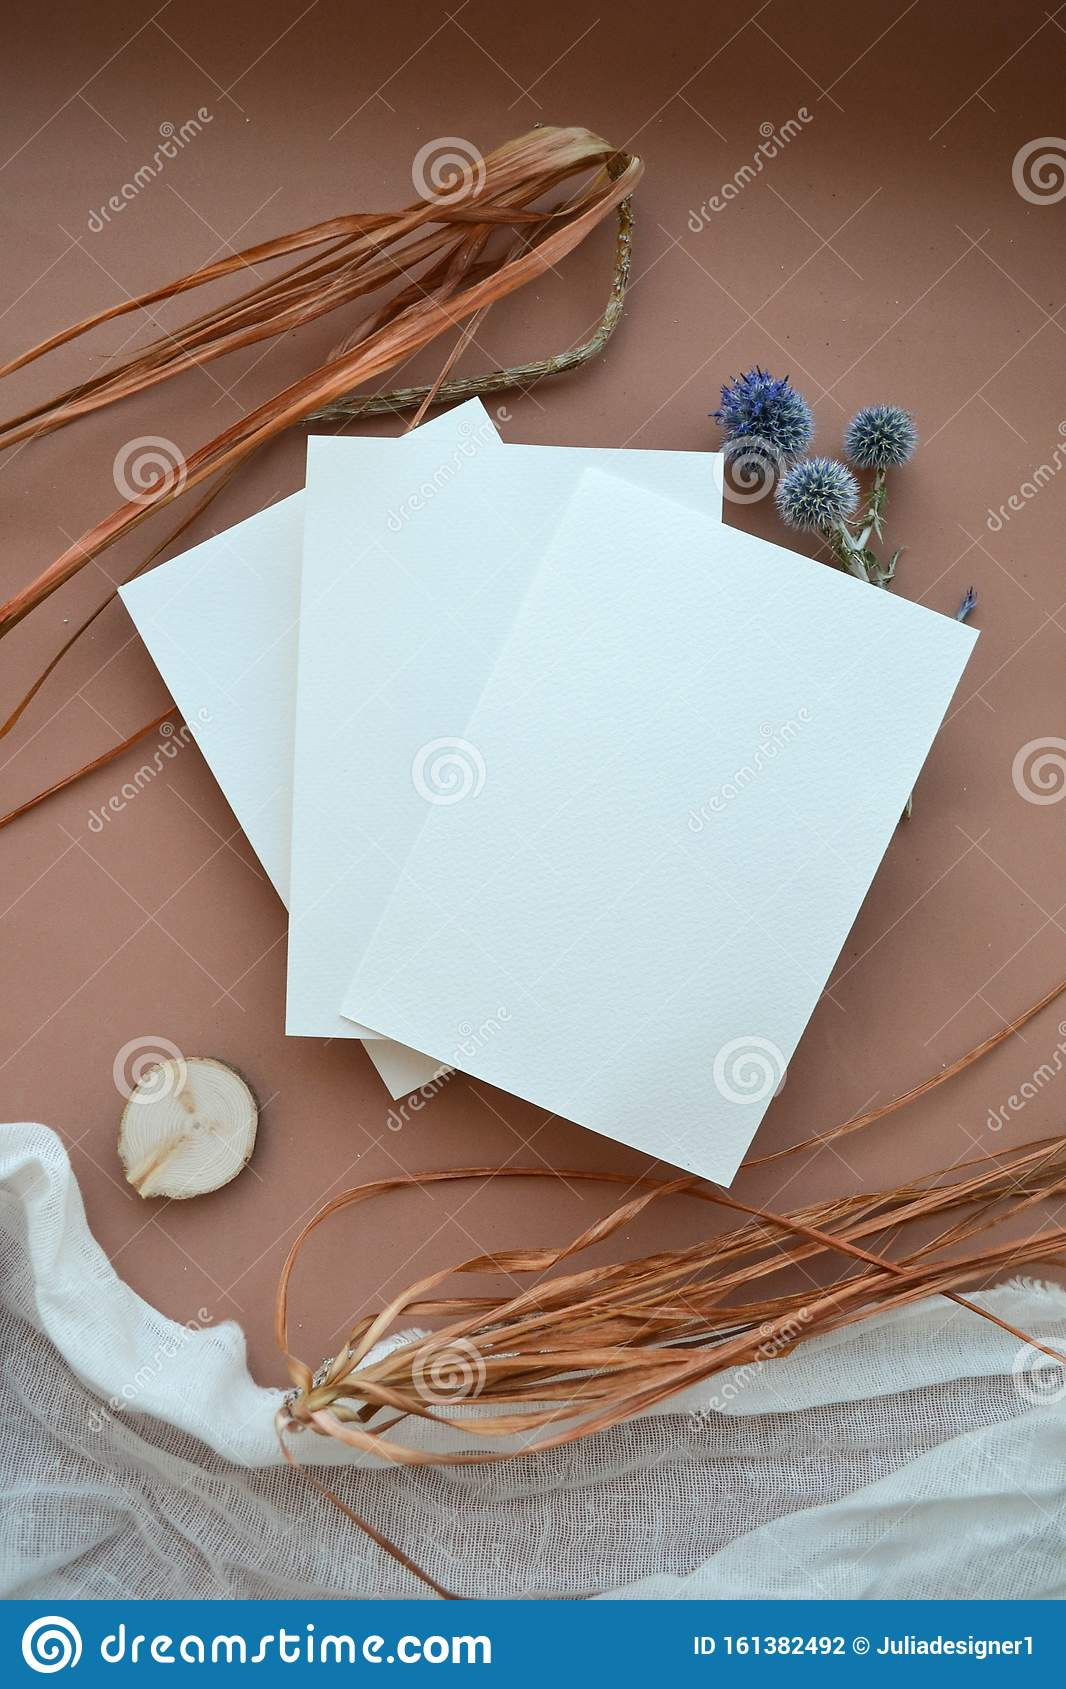 Natural stationery clipart with autumn herbarium